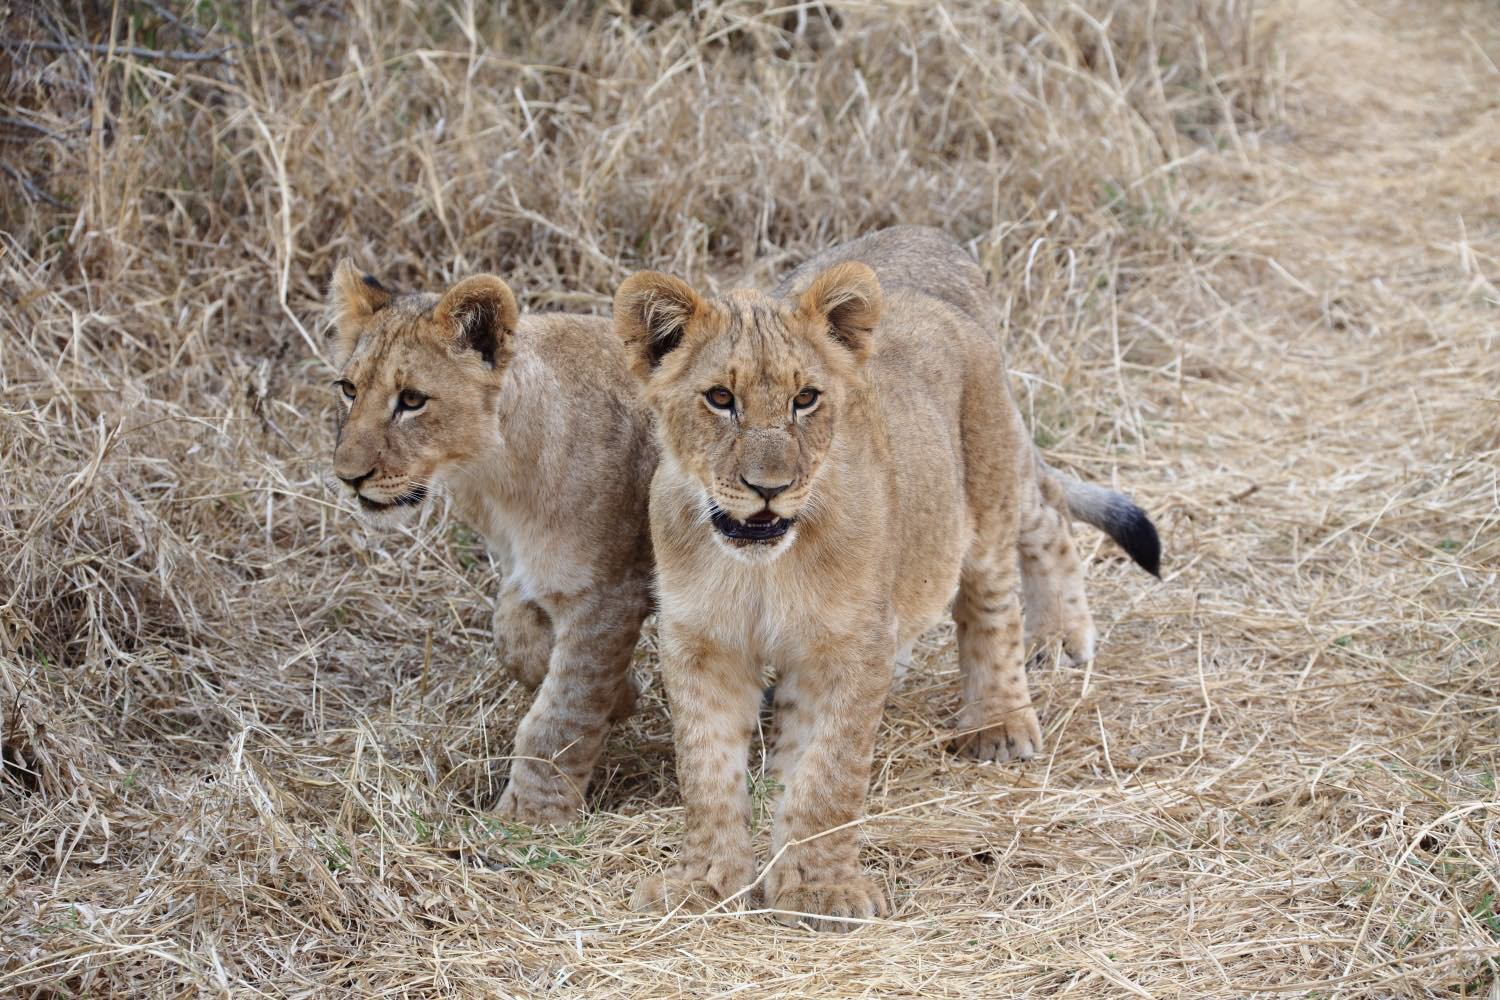 Lion cubs in the bush!    Karongwe Private Game Reserve, South Africa. 12 August 2014. 1/250 s, f/10, +1/3 EV, ISO 1600, 160 mm, EOS 6D + EF 28-300 L